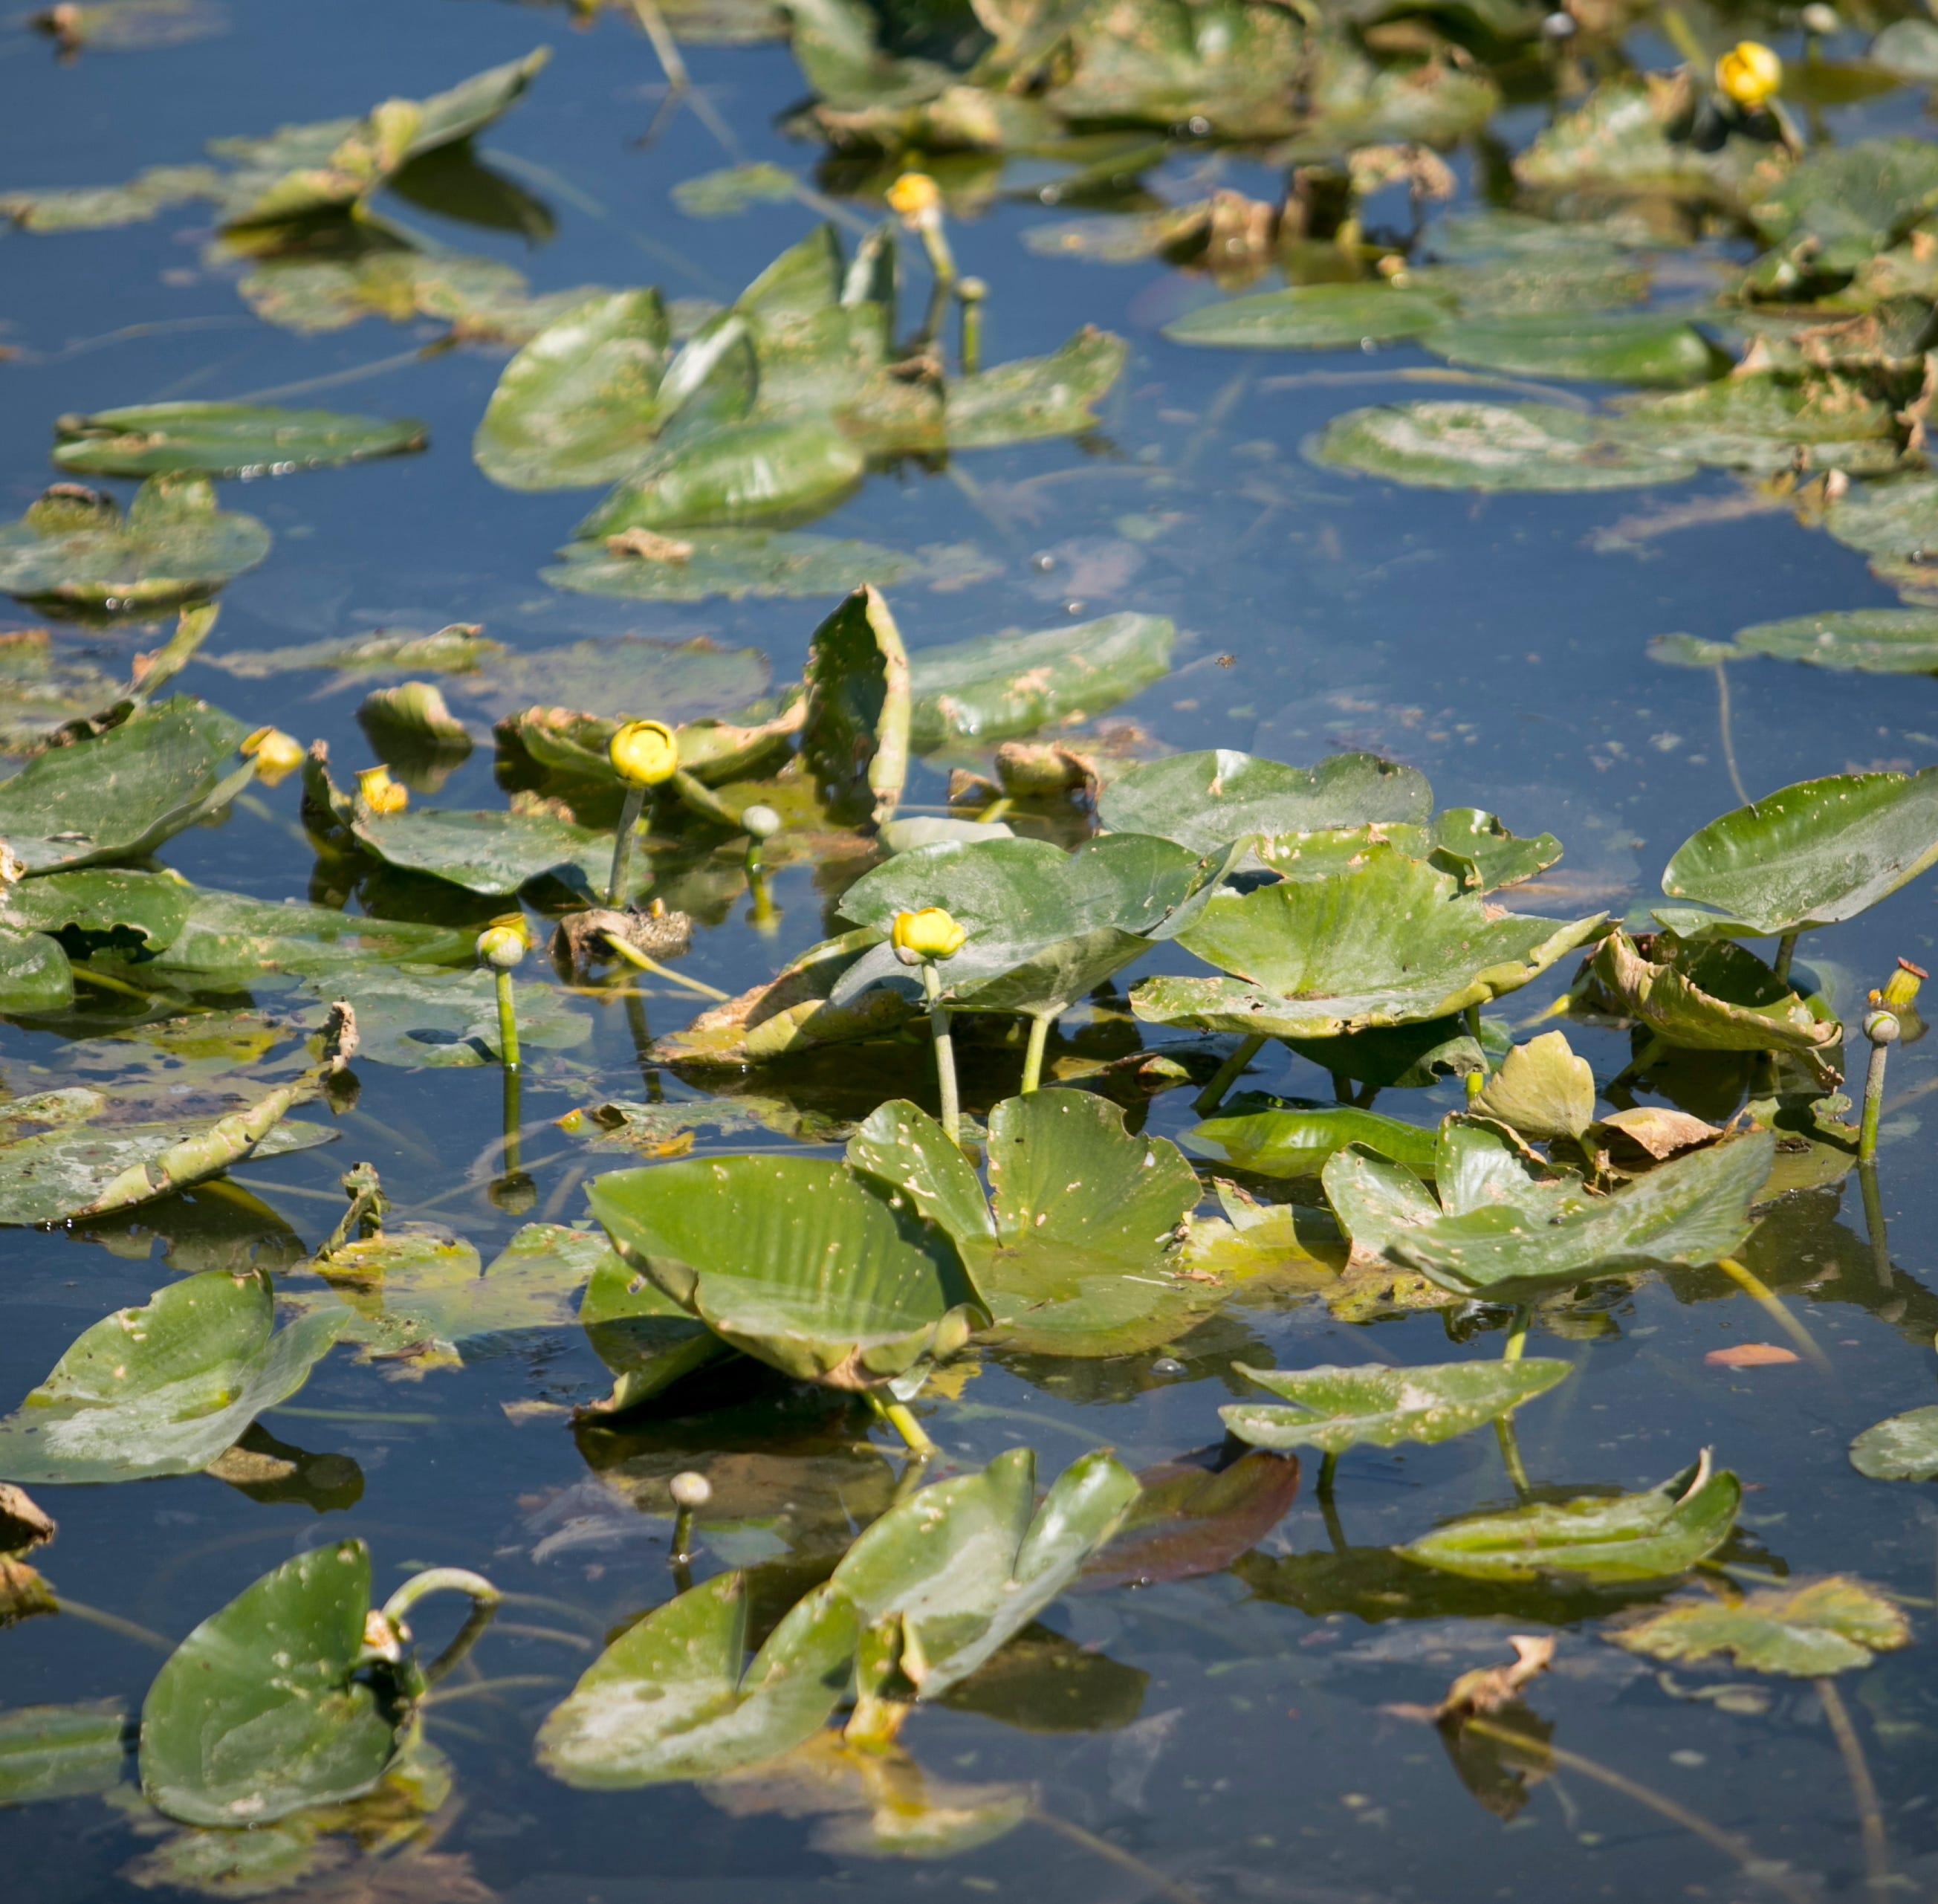 Wildlife officials want more mechanical harvesting, fewer chemicals applied to lakes, rivers